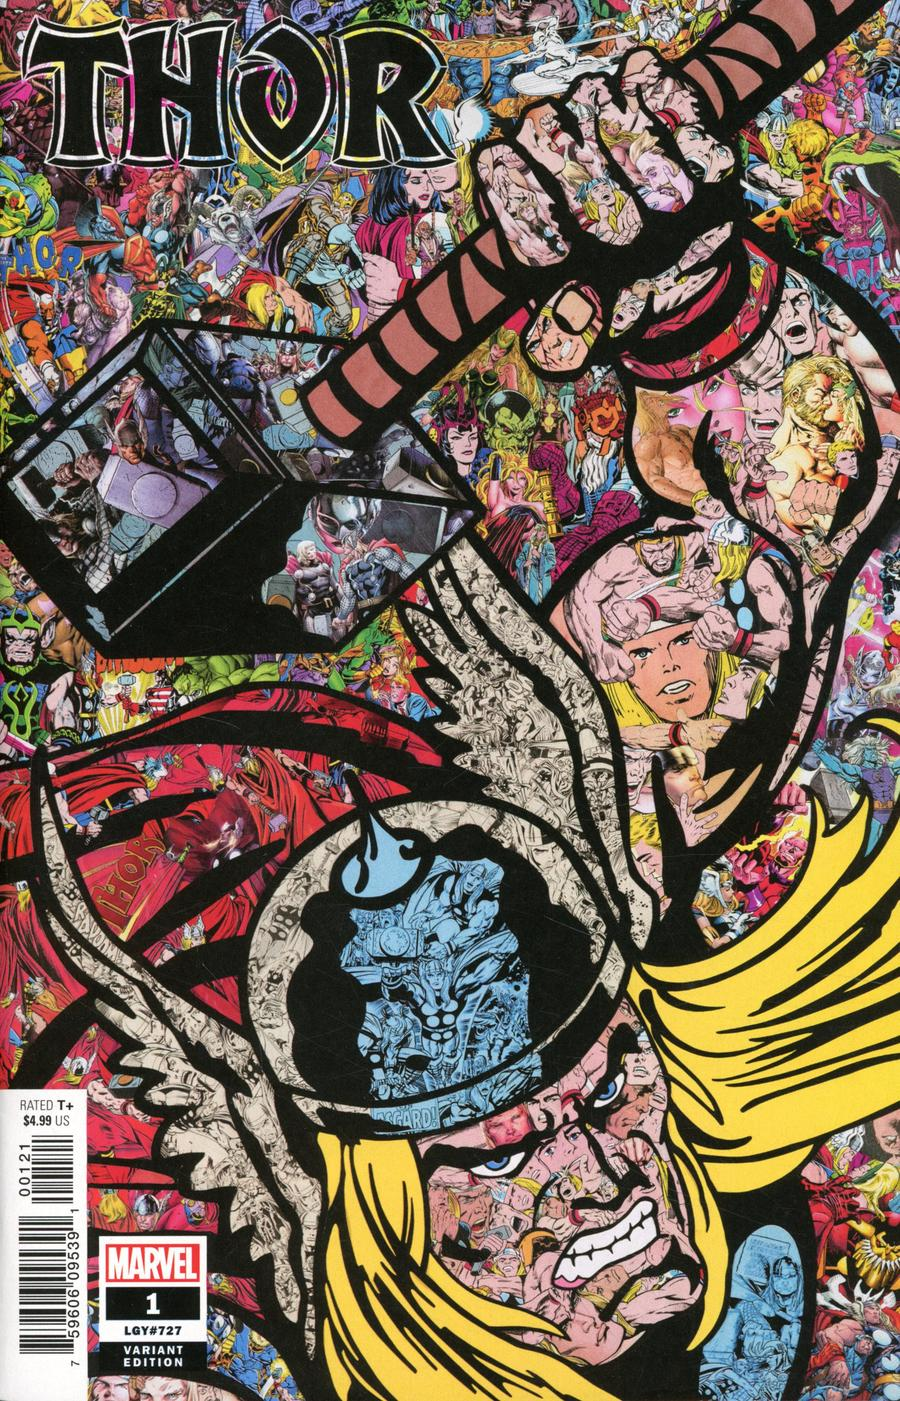 Thor Vol 6 #1 Cover C Variant Mr Garcin Collage Cover